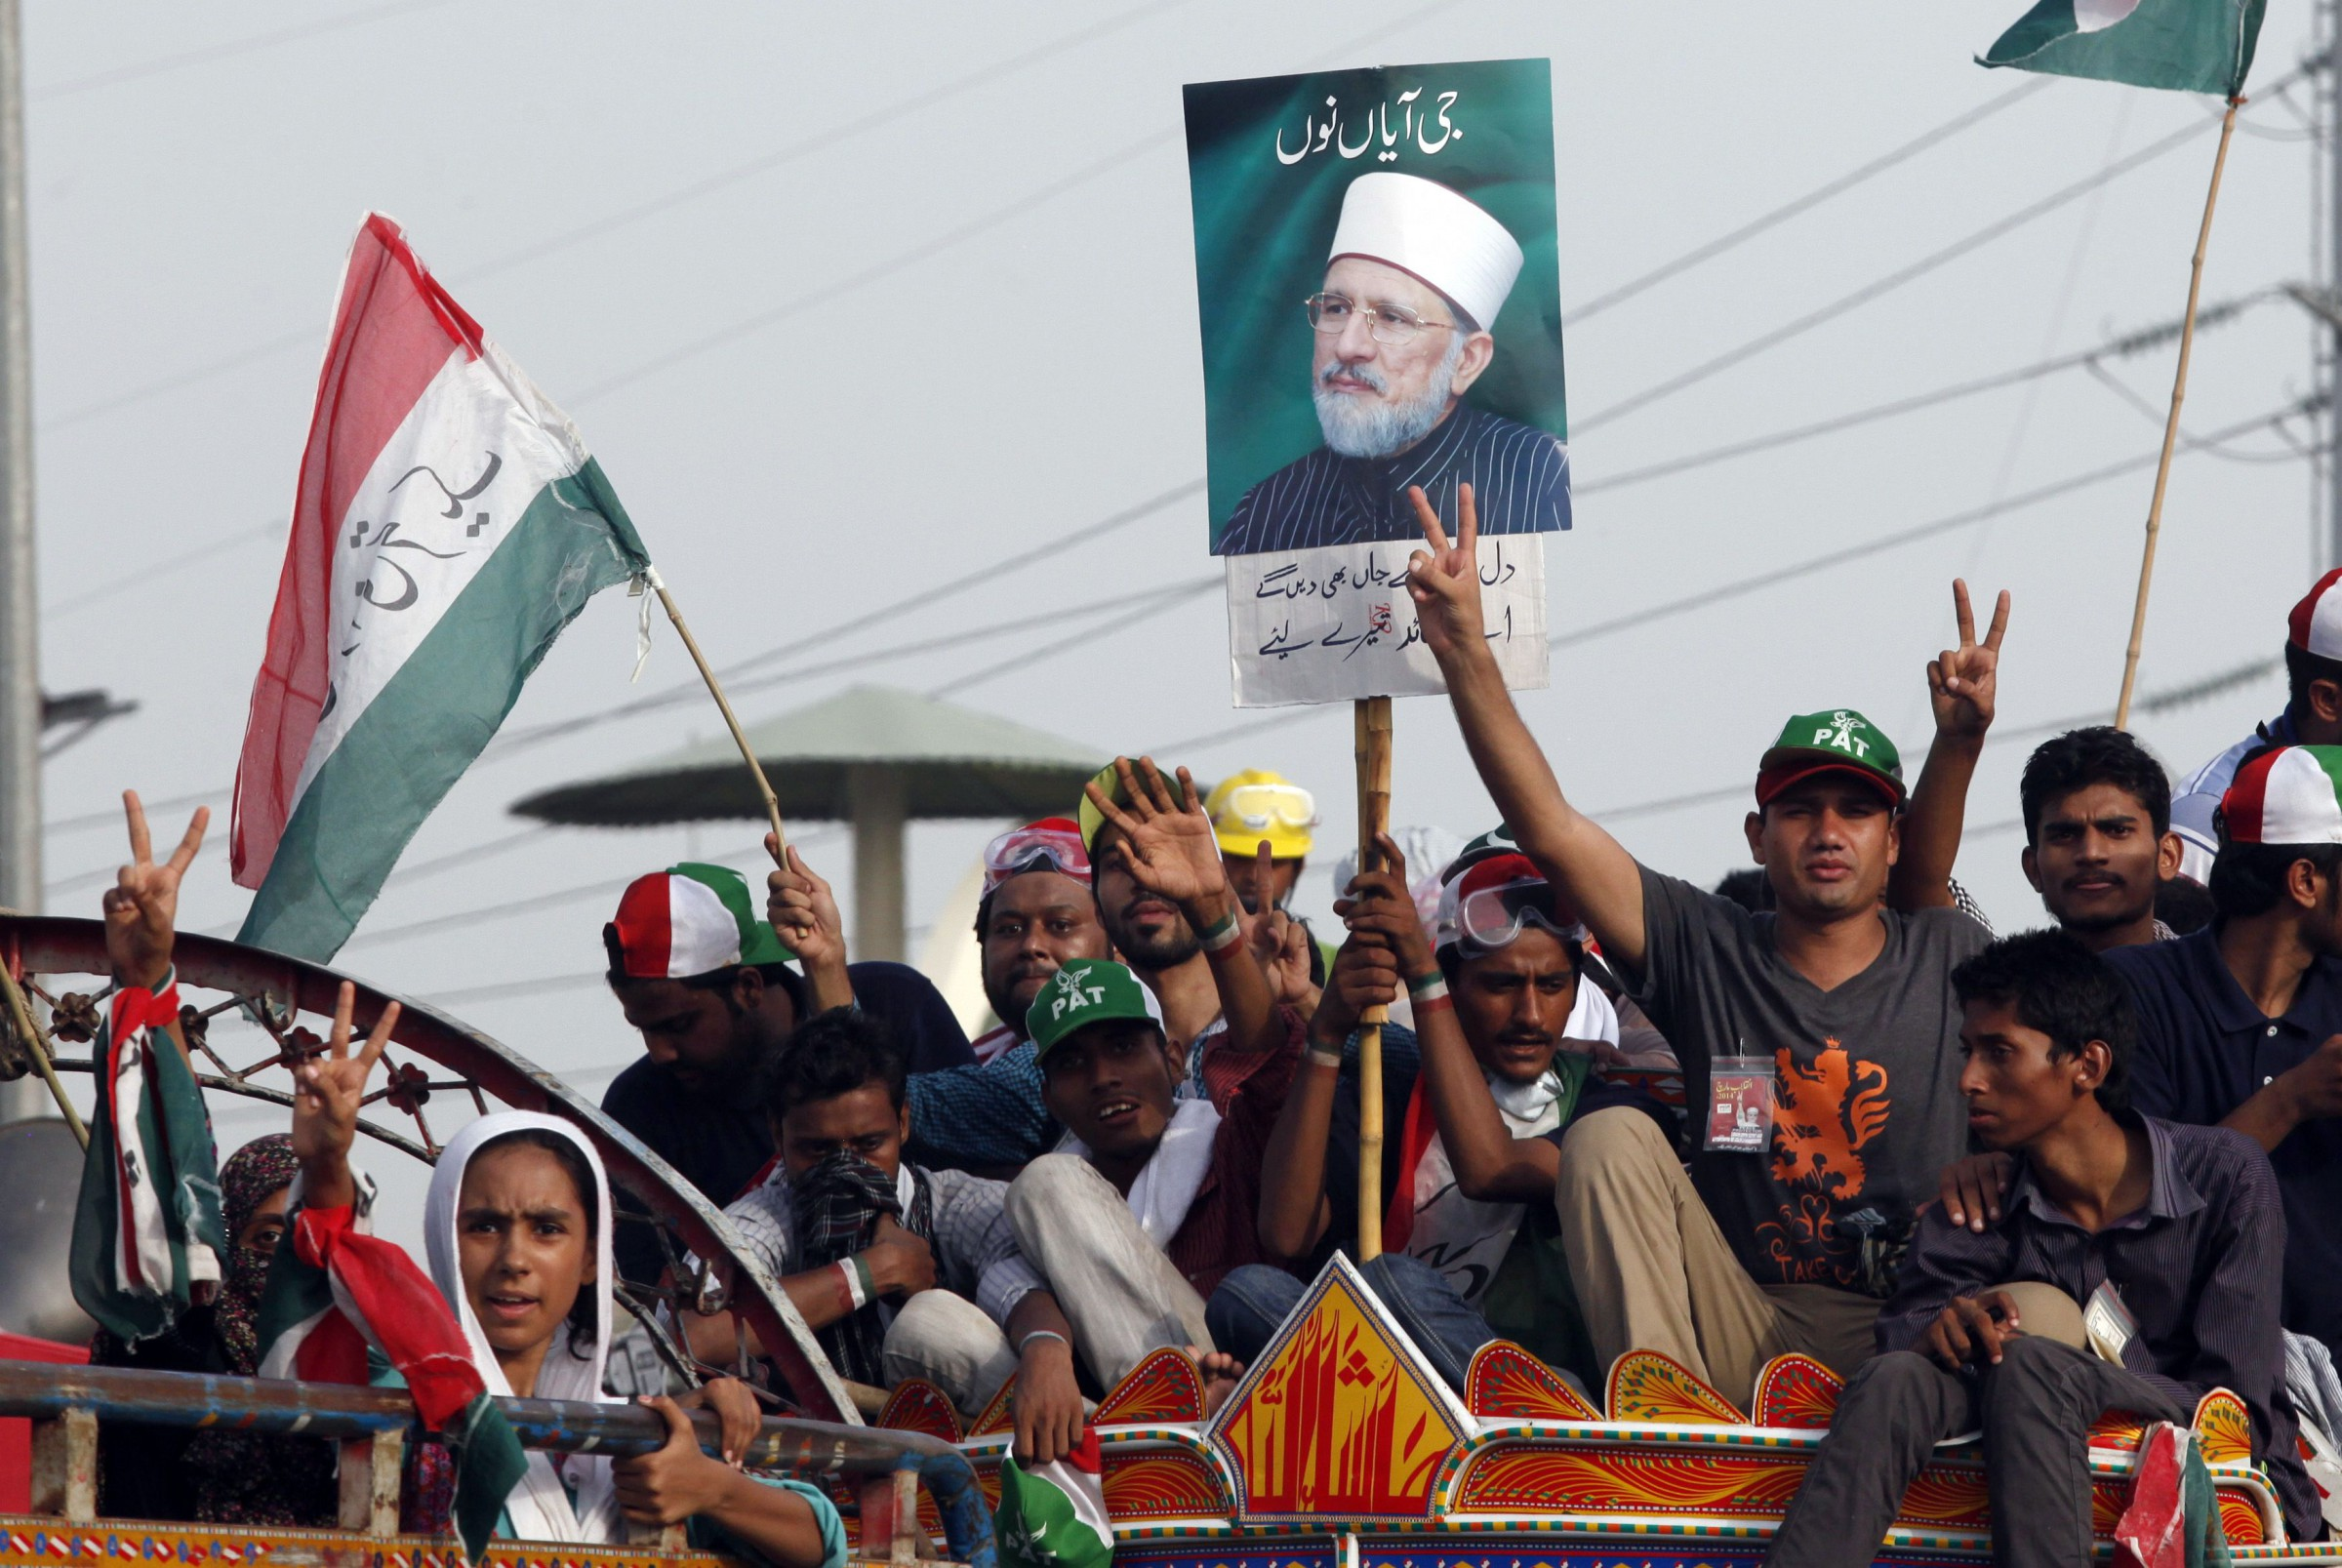 Supporters of Muhammad Tahirul Qadri, Sufi cleric and leader of political party Pakistan Awami Tehreek (PAT) gesture as they begin their march toward the capital from Lahore August 14, 2014. Thousands of anti-government protesters began to march on the Pakistani capital, Islamabad, on Thursday from the eastern city of Lahore, raising fears about political stability and prospects for civilian rule in the nuclear-armed country. Two protest groups - one led by cricketer-turned-opposition politician Imran Khan, and the other by activist cleric Tahir ul-Qadri - are heading to the capital to demand that a government they condemn as corrupt steps down. REUTERS/Mohsin Raza (PAKISTAN - Tags: POLITICS CIVIL UNREST) - RTR42FAZ